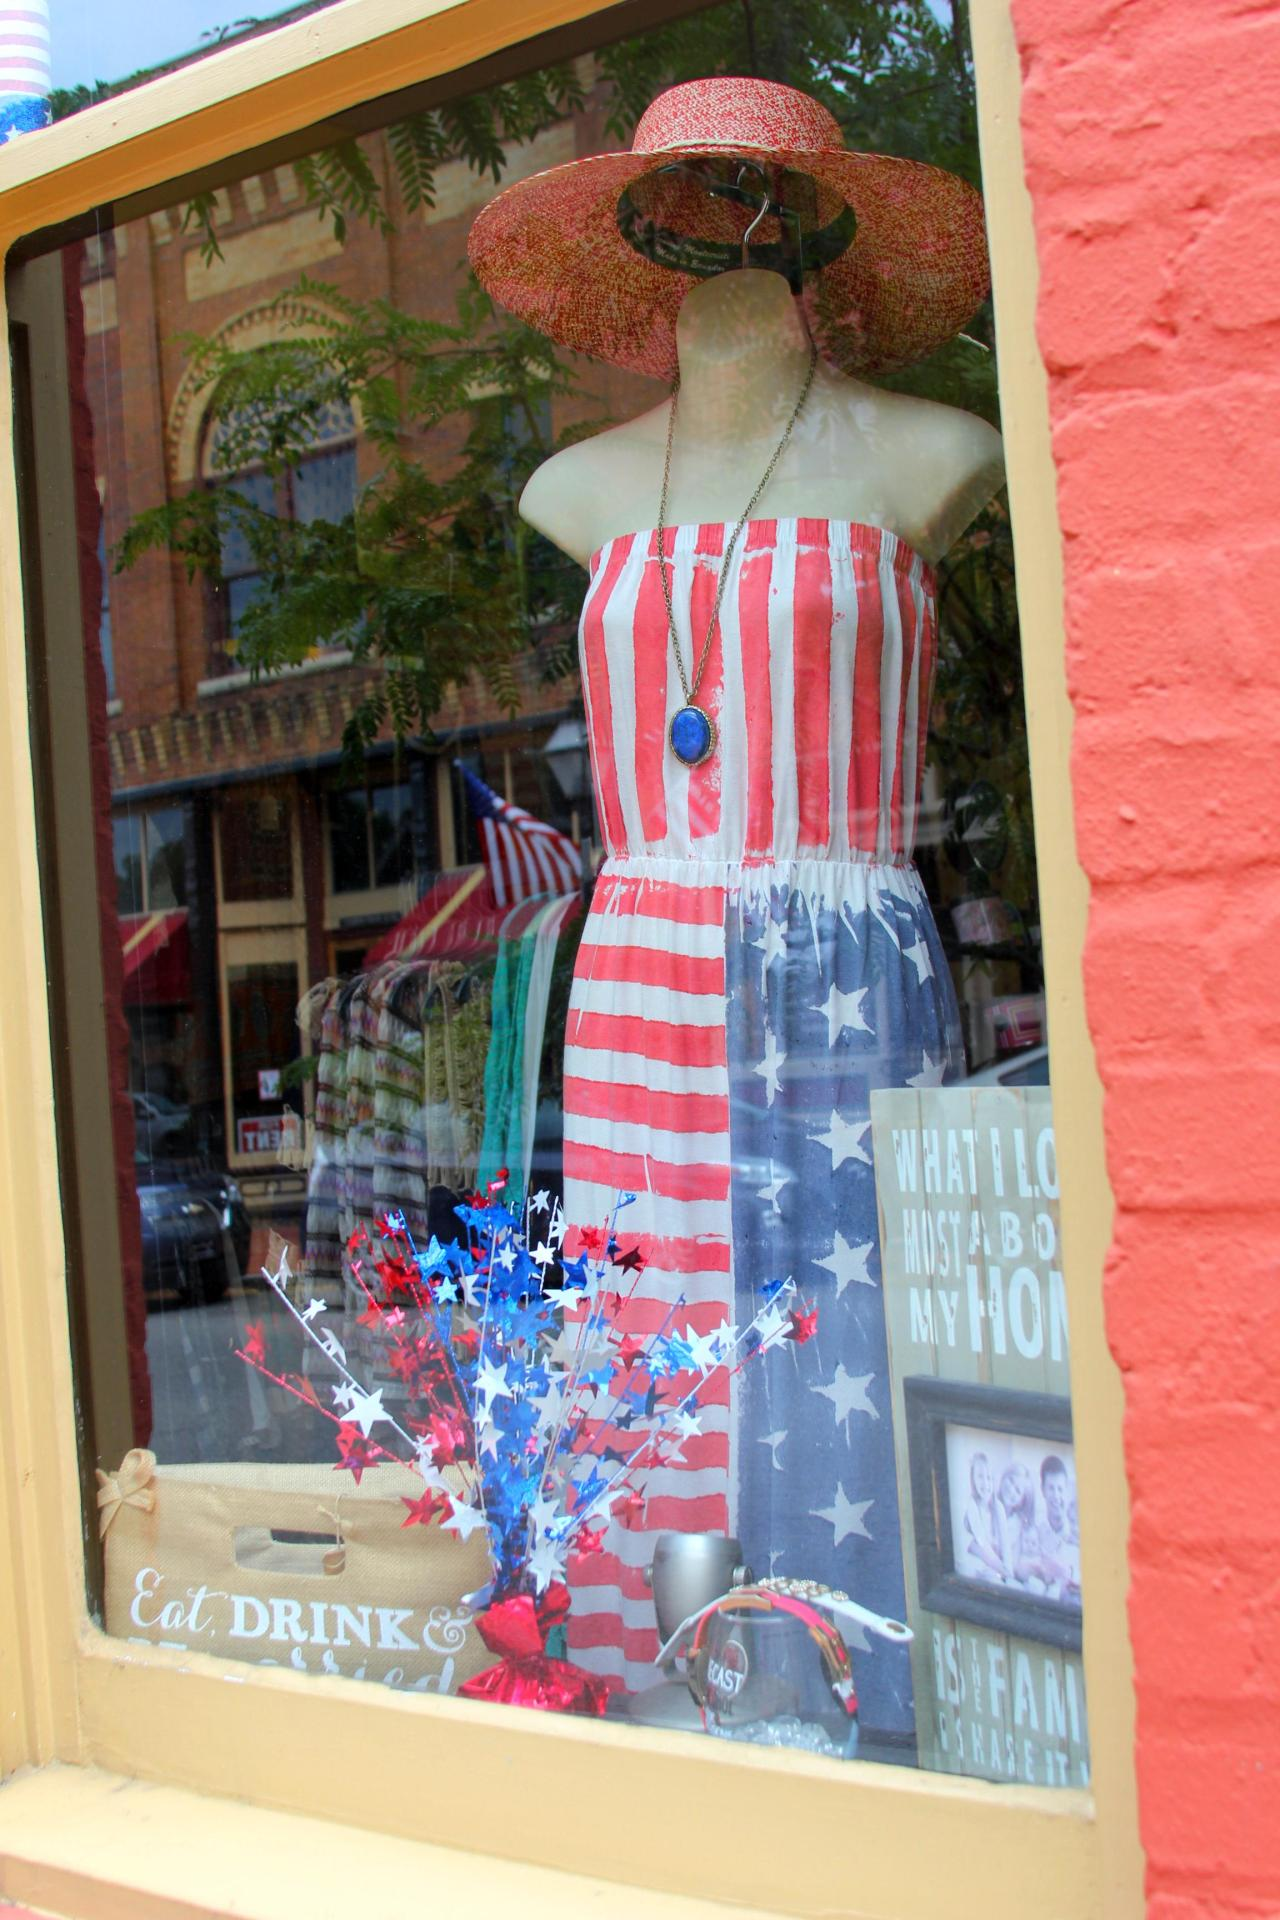 Shellz store window in downtown Jonesborough, Tennessee.